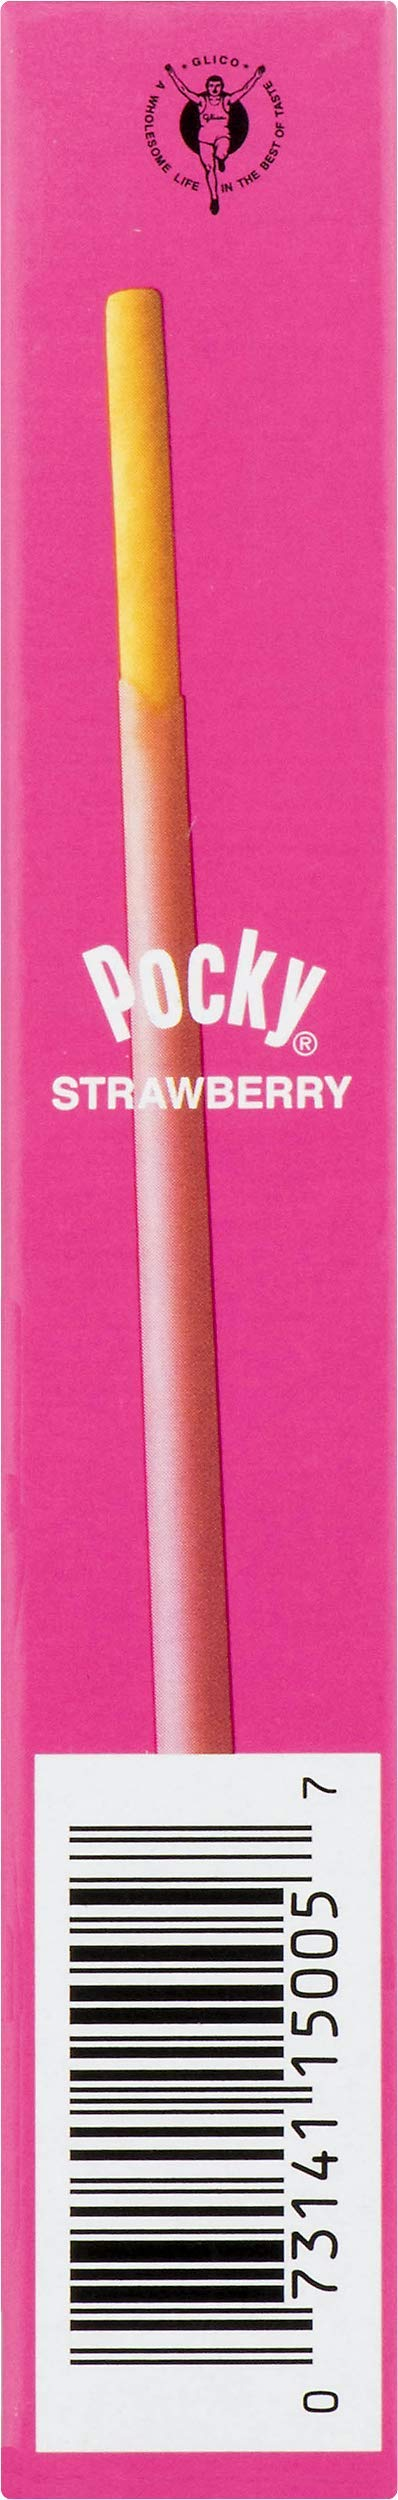 Glico Pocky Biscuit Sticks with Strawberry Cream, 1.41 ounce Boxes - Pack of 14 by Glico (Image #7)